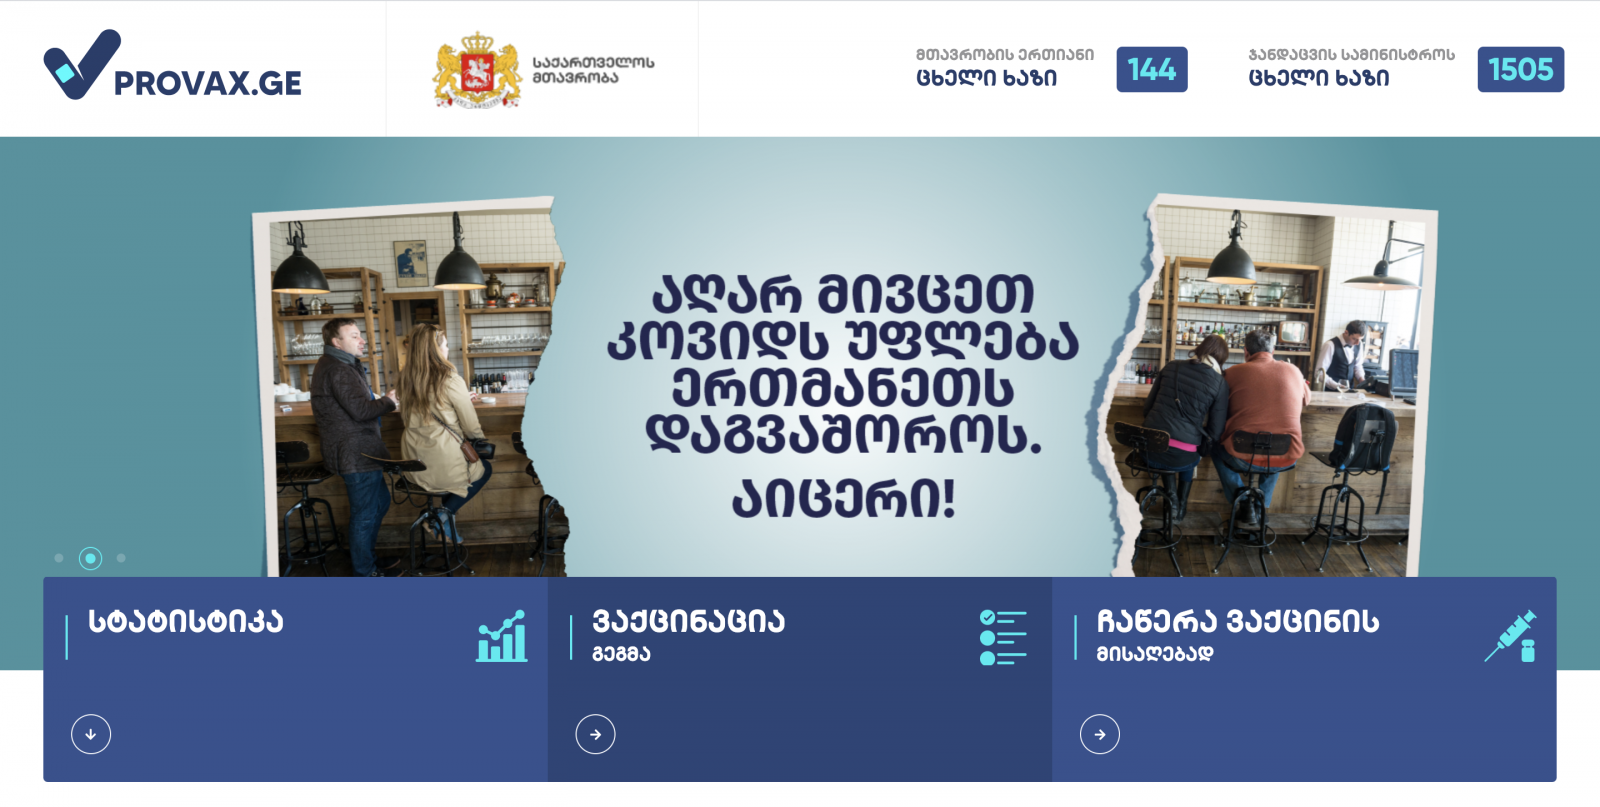 To raise awareness about vaccinations, the government has created a special website